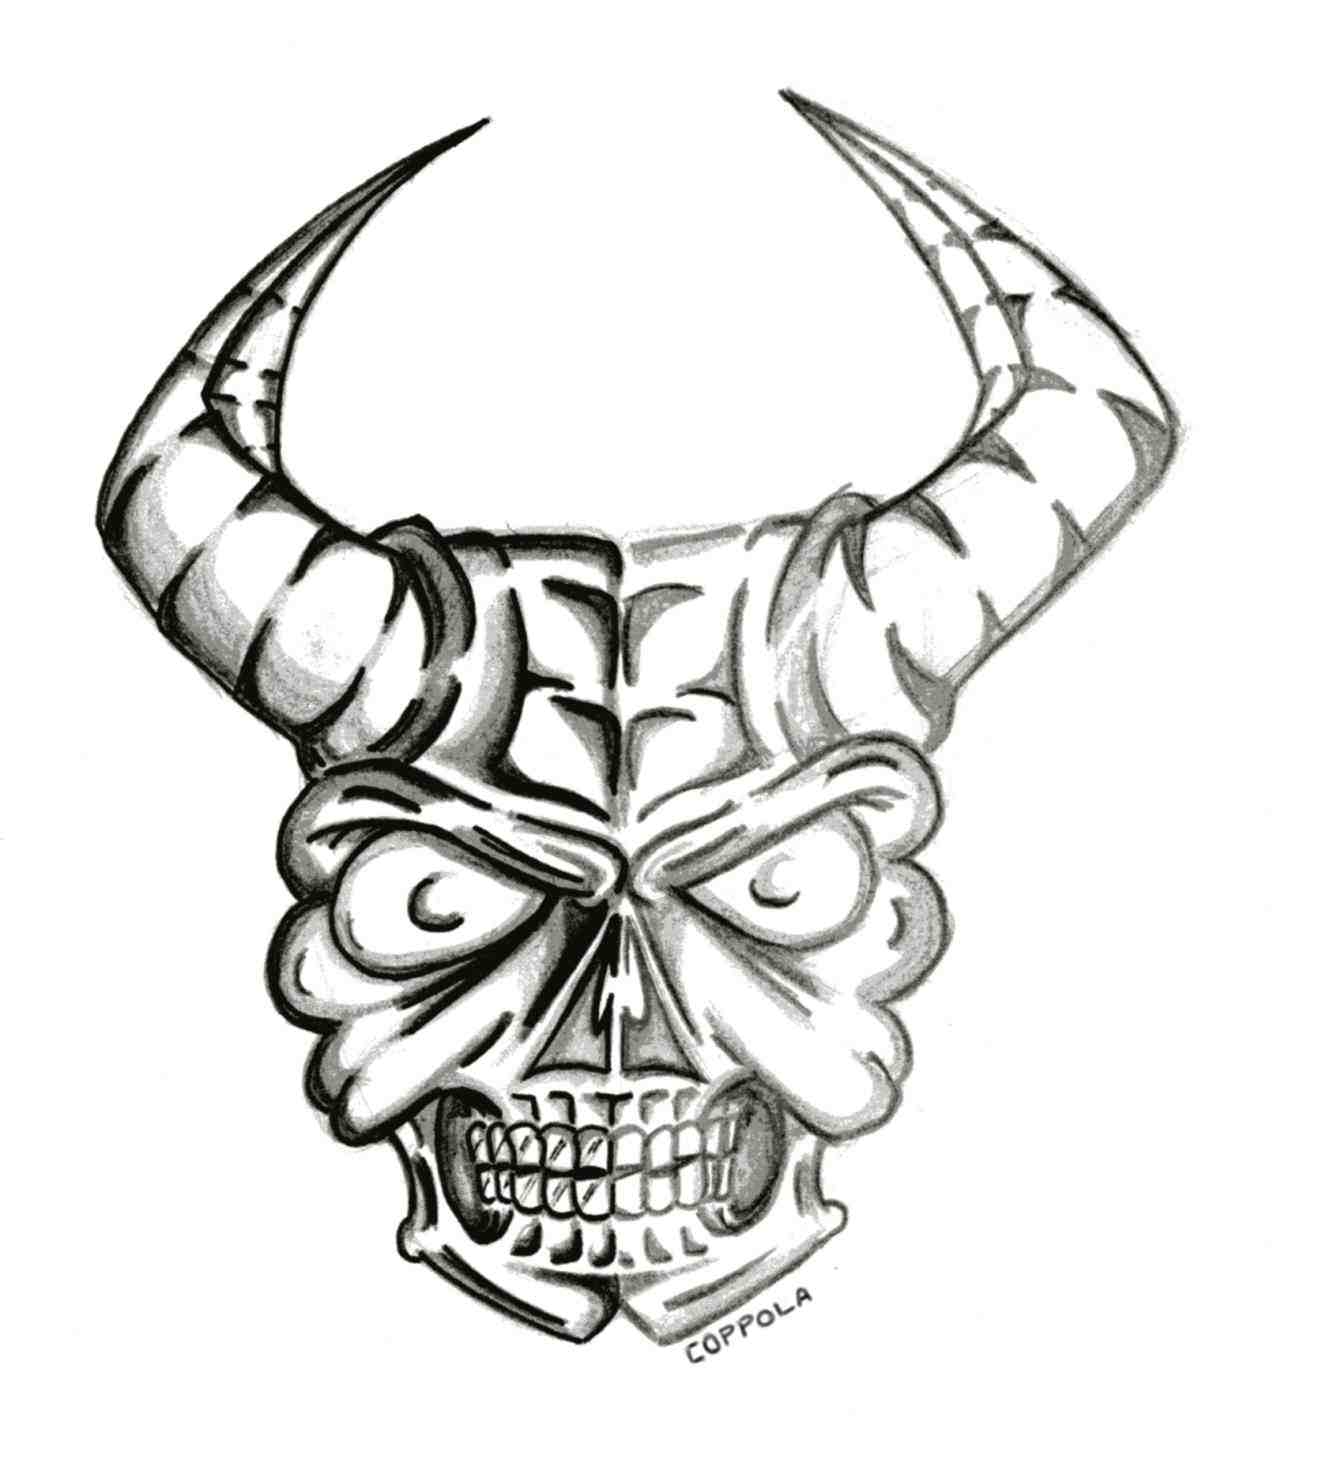 1326x1470 Human Goat Stock Vector Human Skull Drawings With Horns Goat Stock